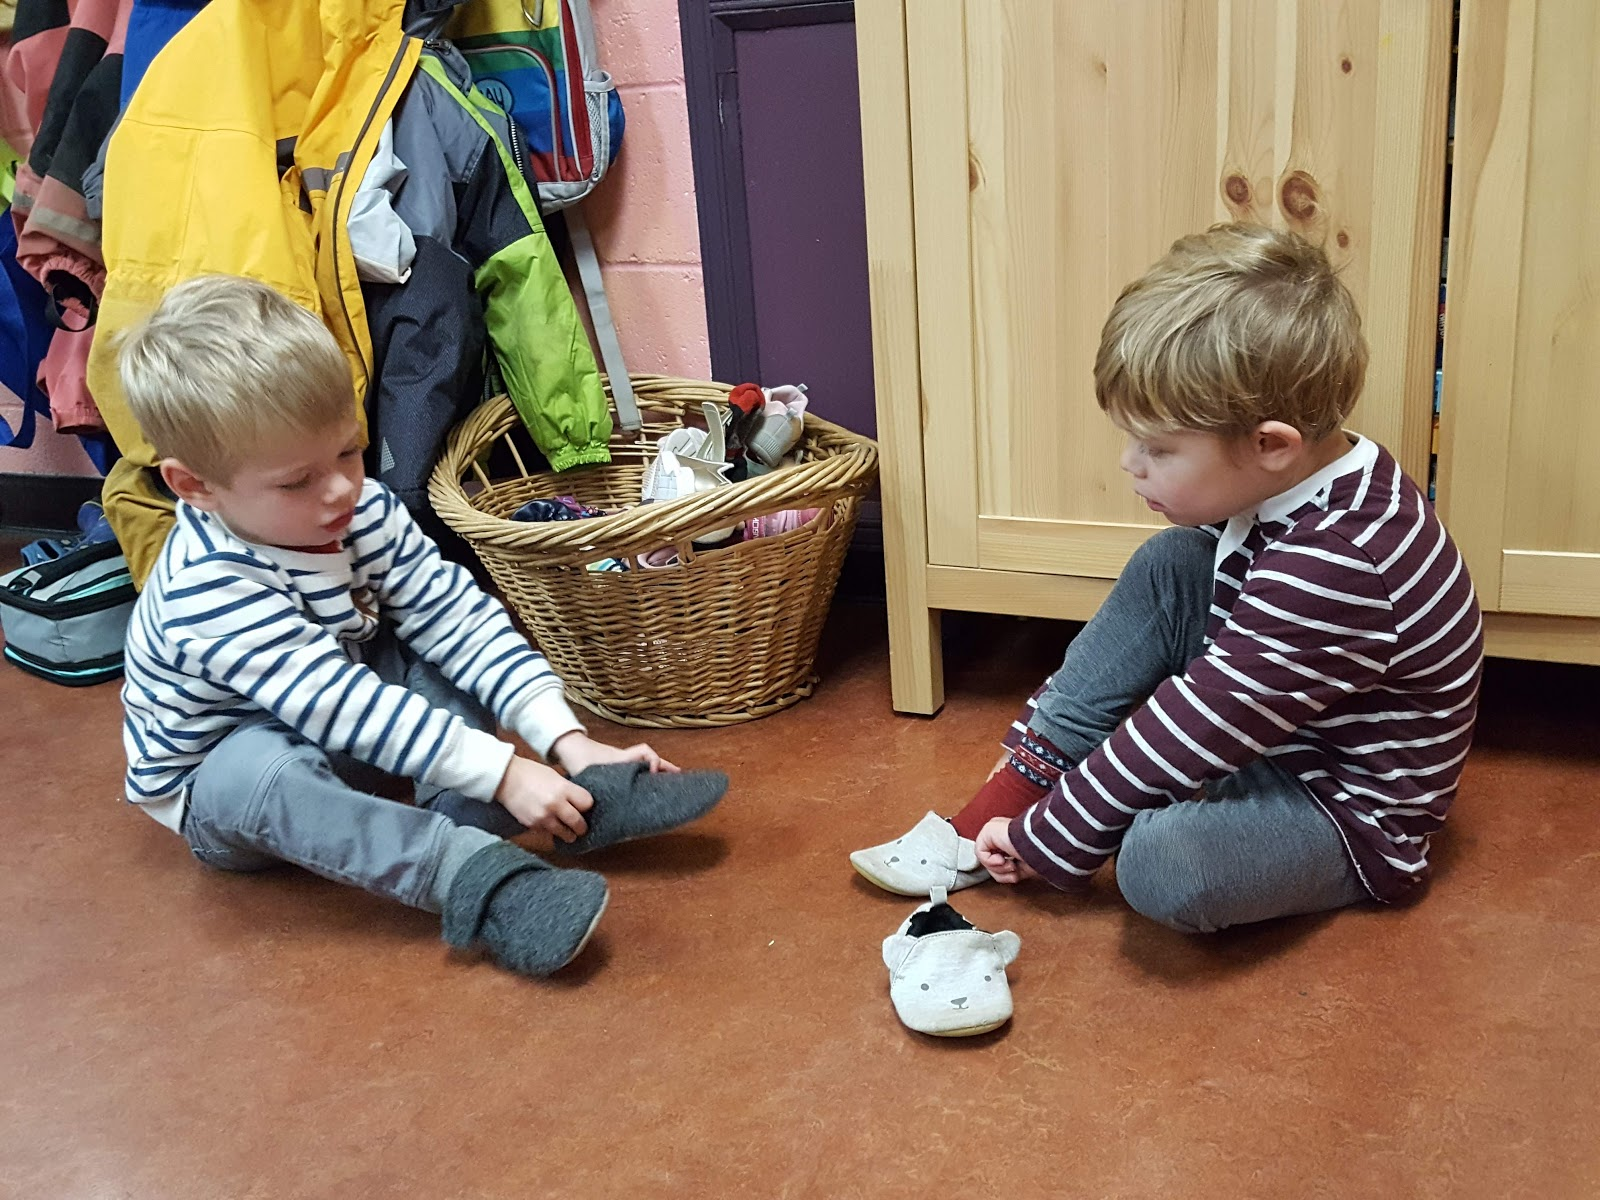 Two young boys putting on slippers